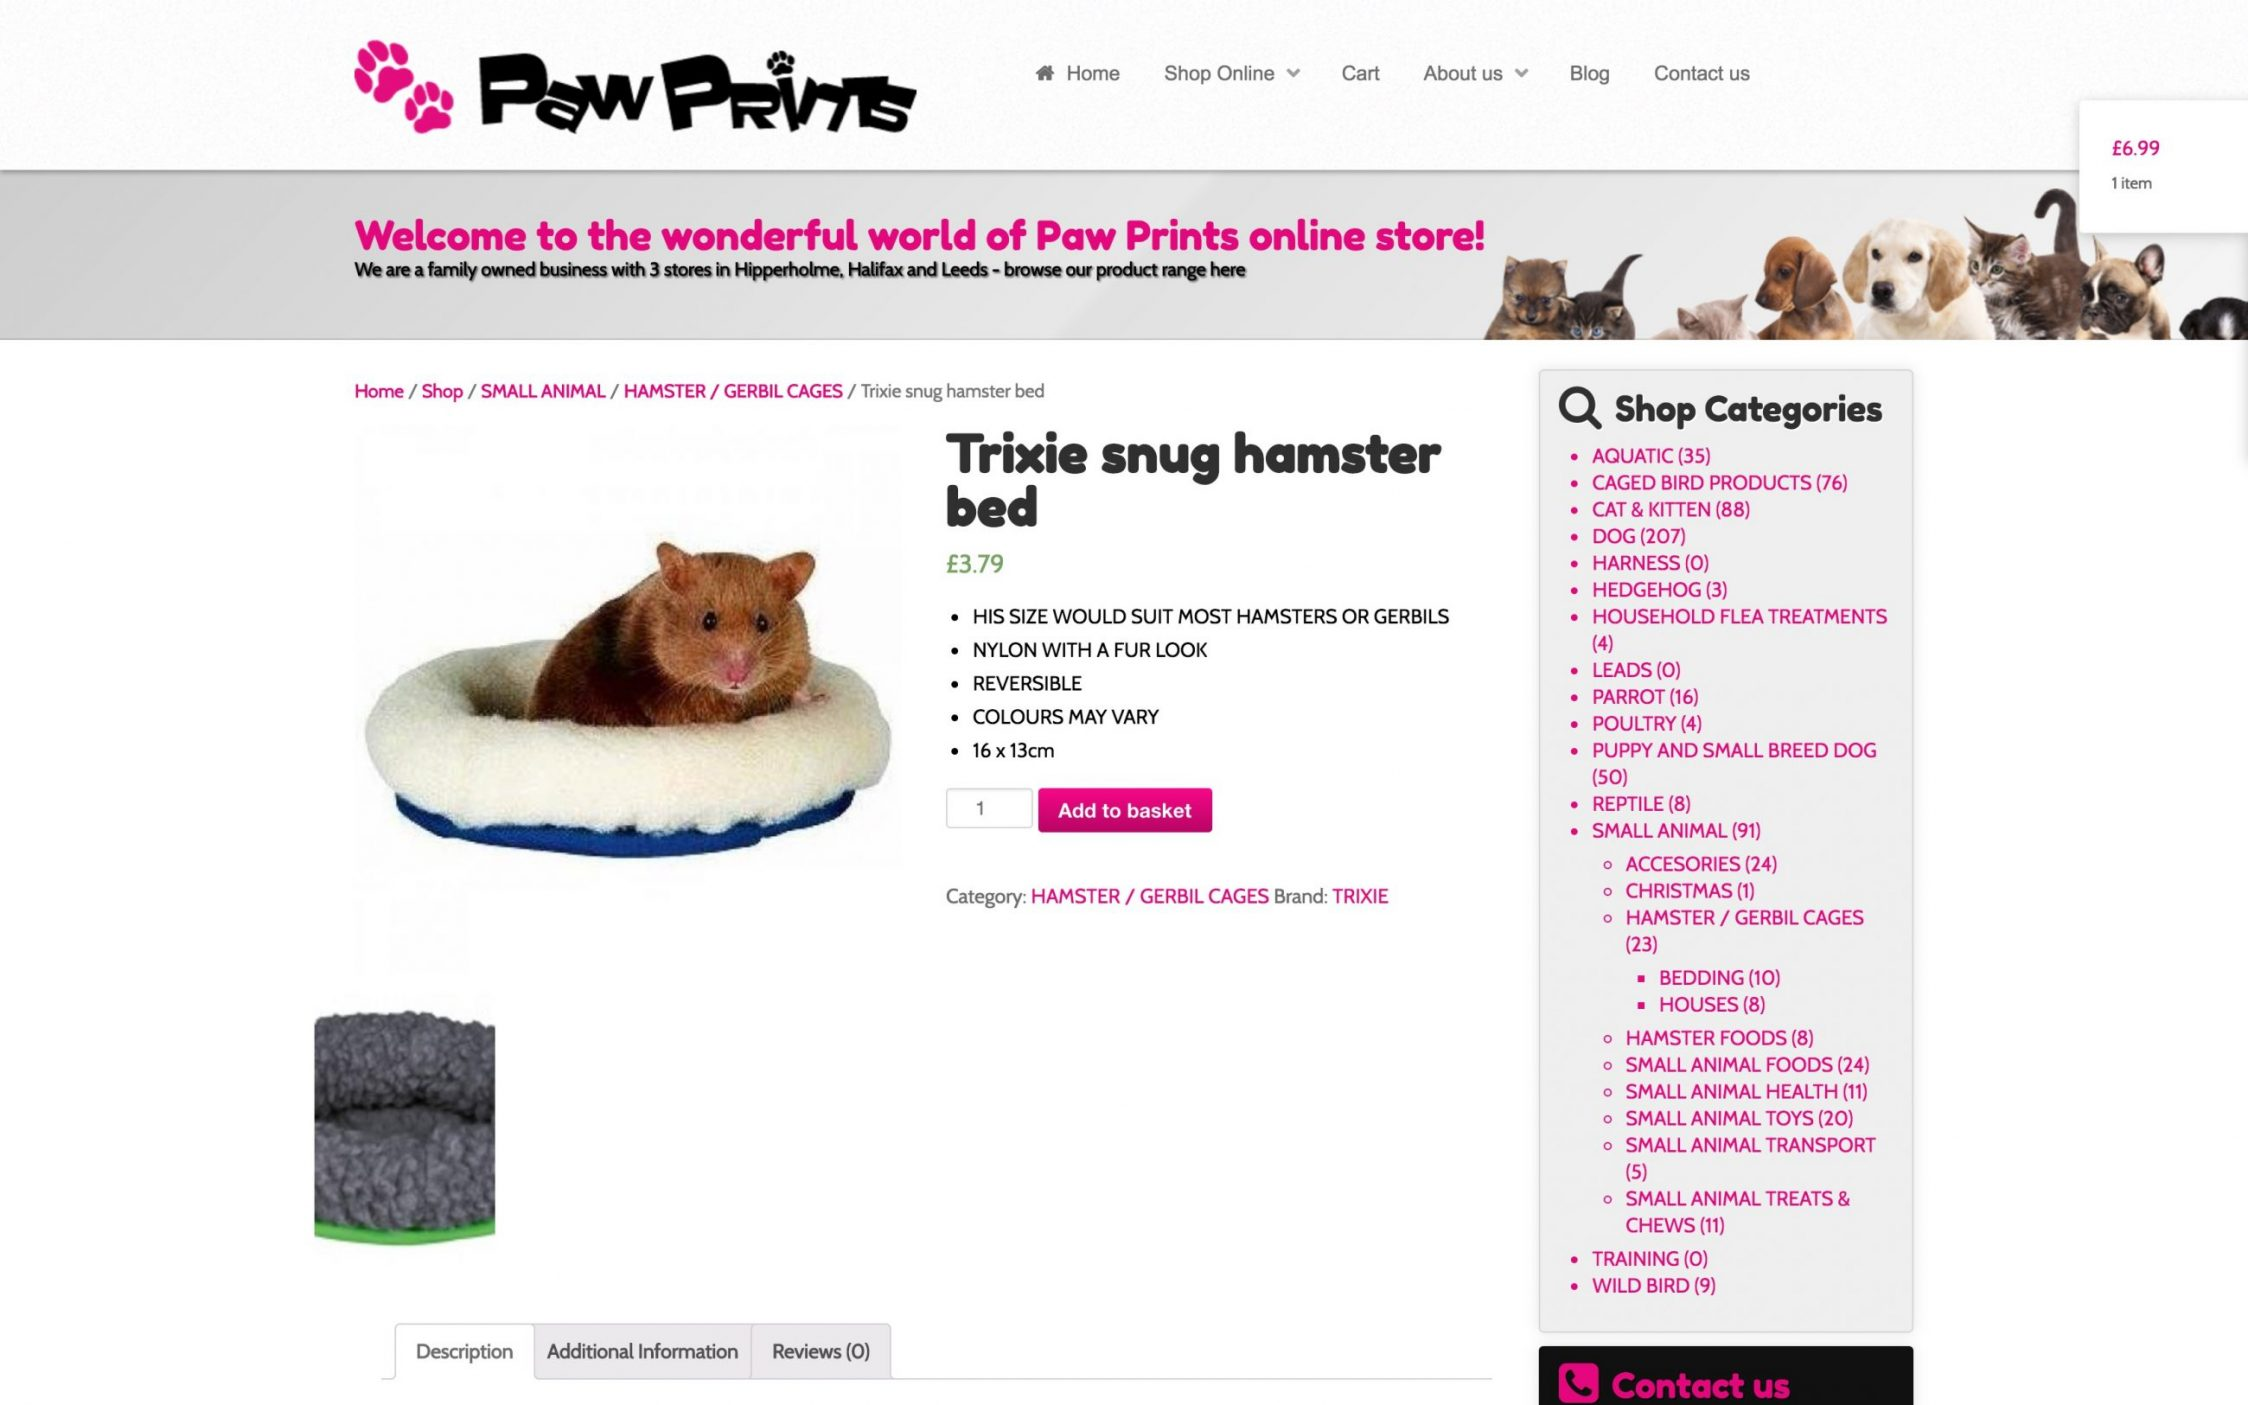 Screen Shot 2016 11 09 at 23.06.26 1 - Webdesign for pet shop chain in Yorkshire